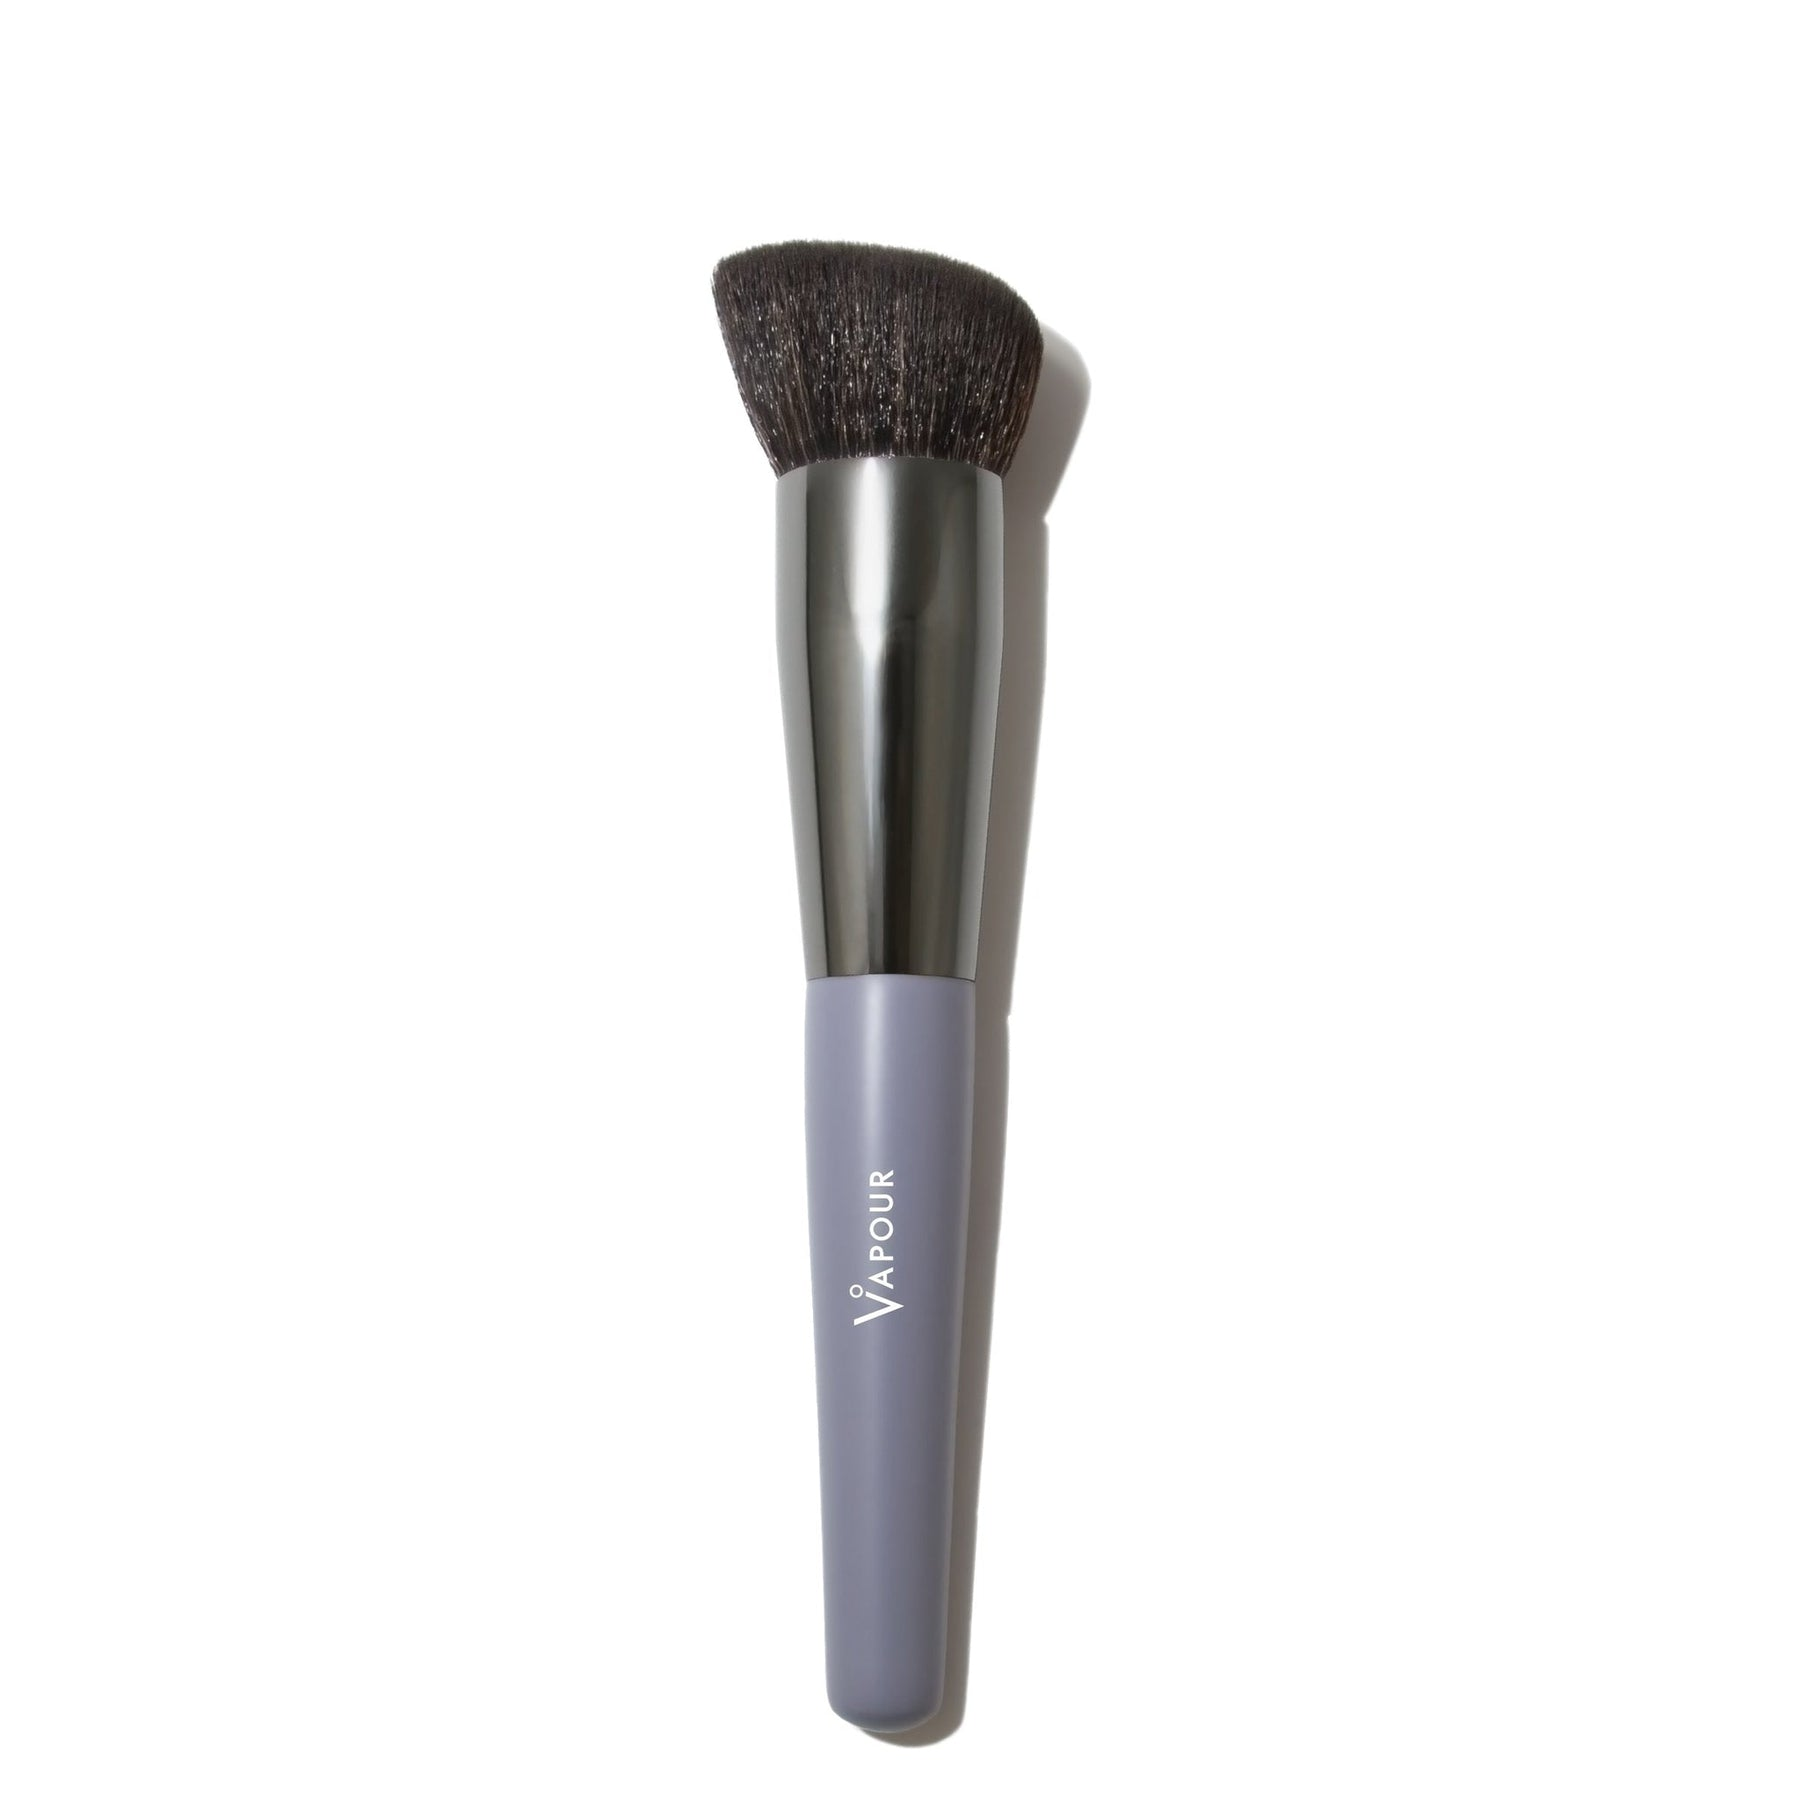 Vapour - Brush Foundation